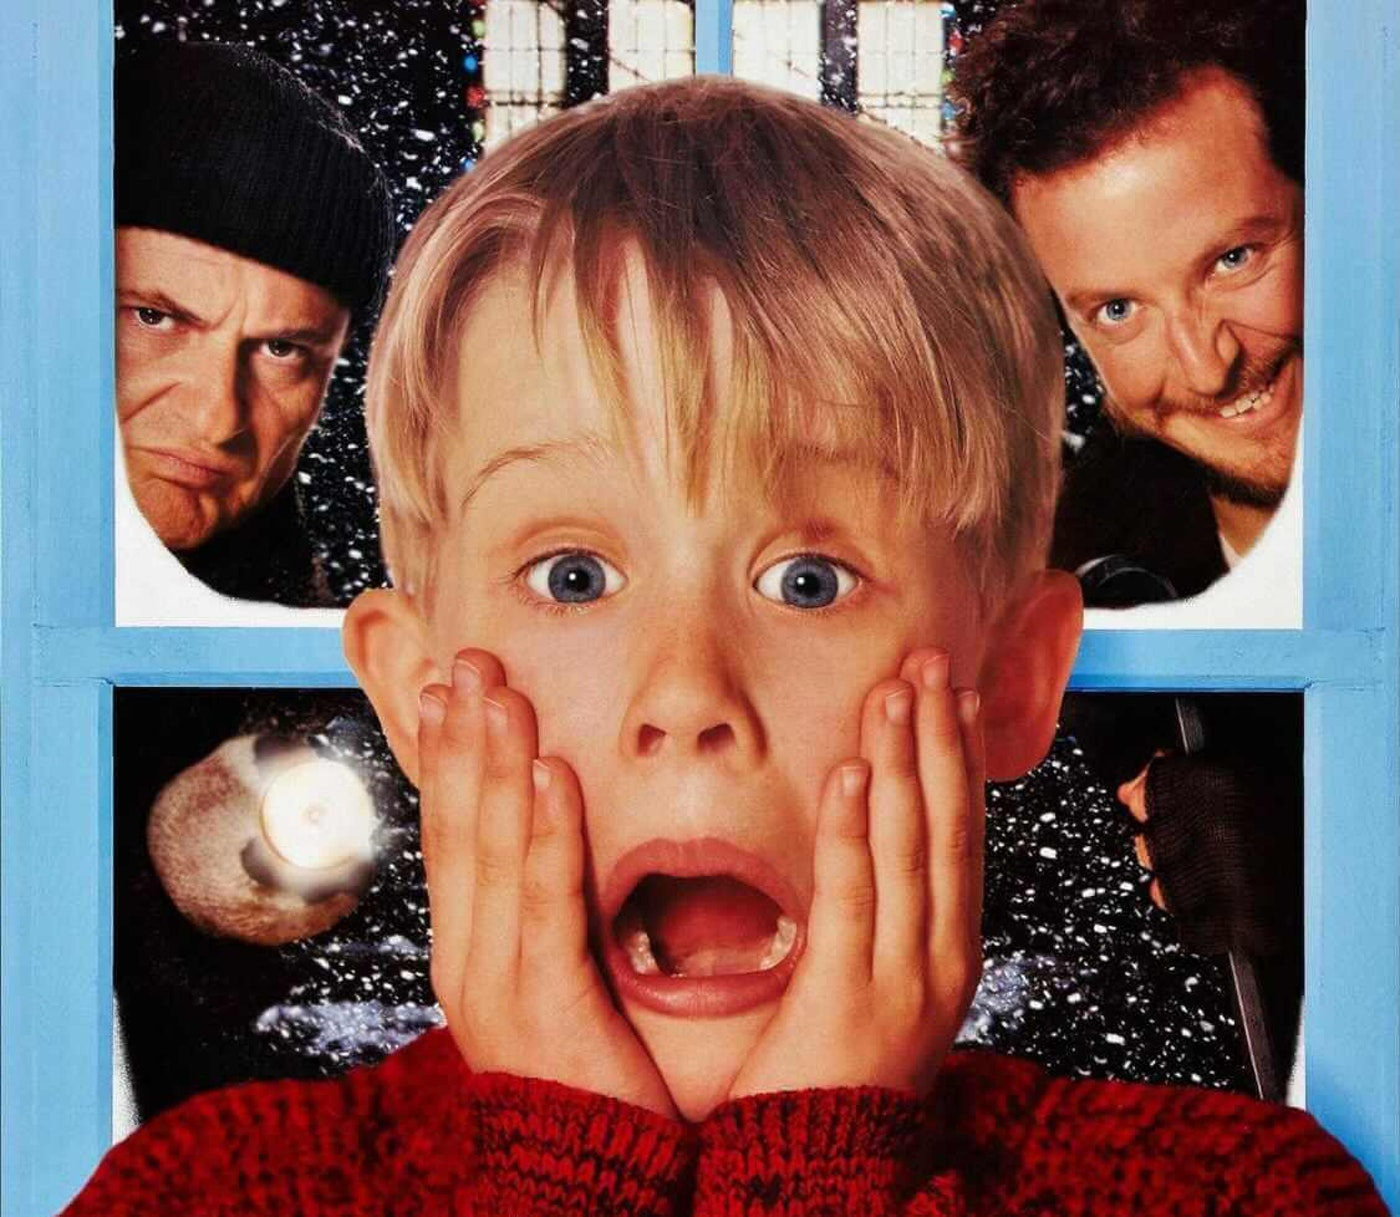 """Macaulay Culkin in """"Home Alone."""" Watch this Christmas classic at Phantom Power in Millersville, Lancaster County, on Sunday. (Courtesy of 20th Century Fox)"""